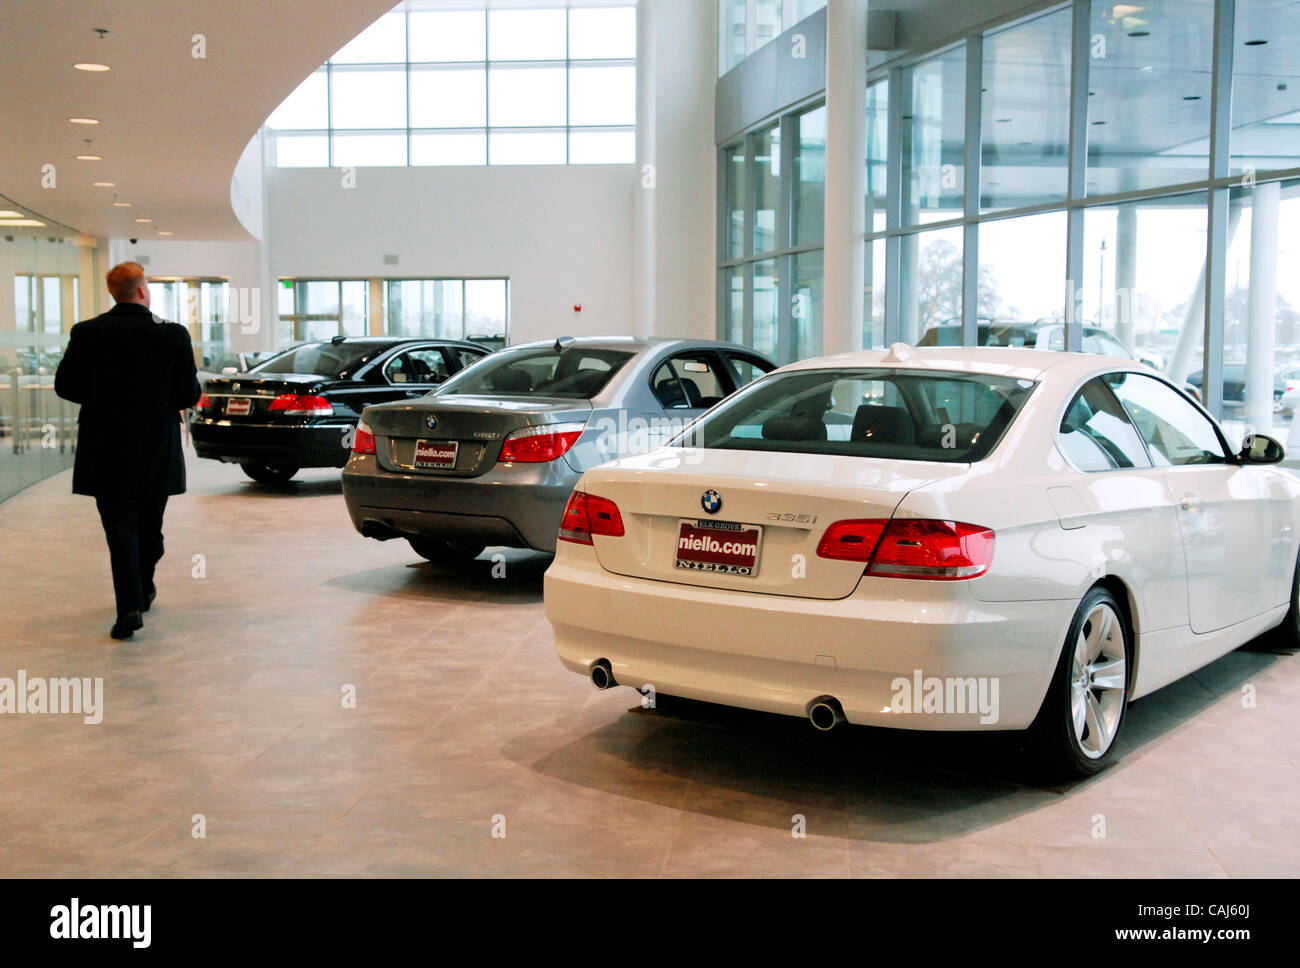 Elk Grove Auto Mall >> Bmws Line The Showroom Floor Of The Niello Bmw Dealership In The Elk